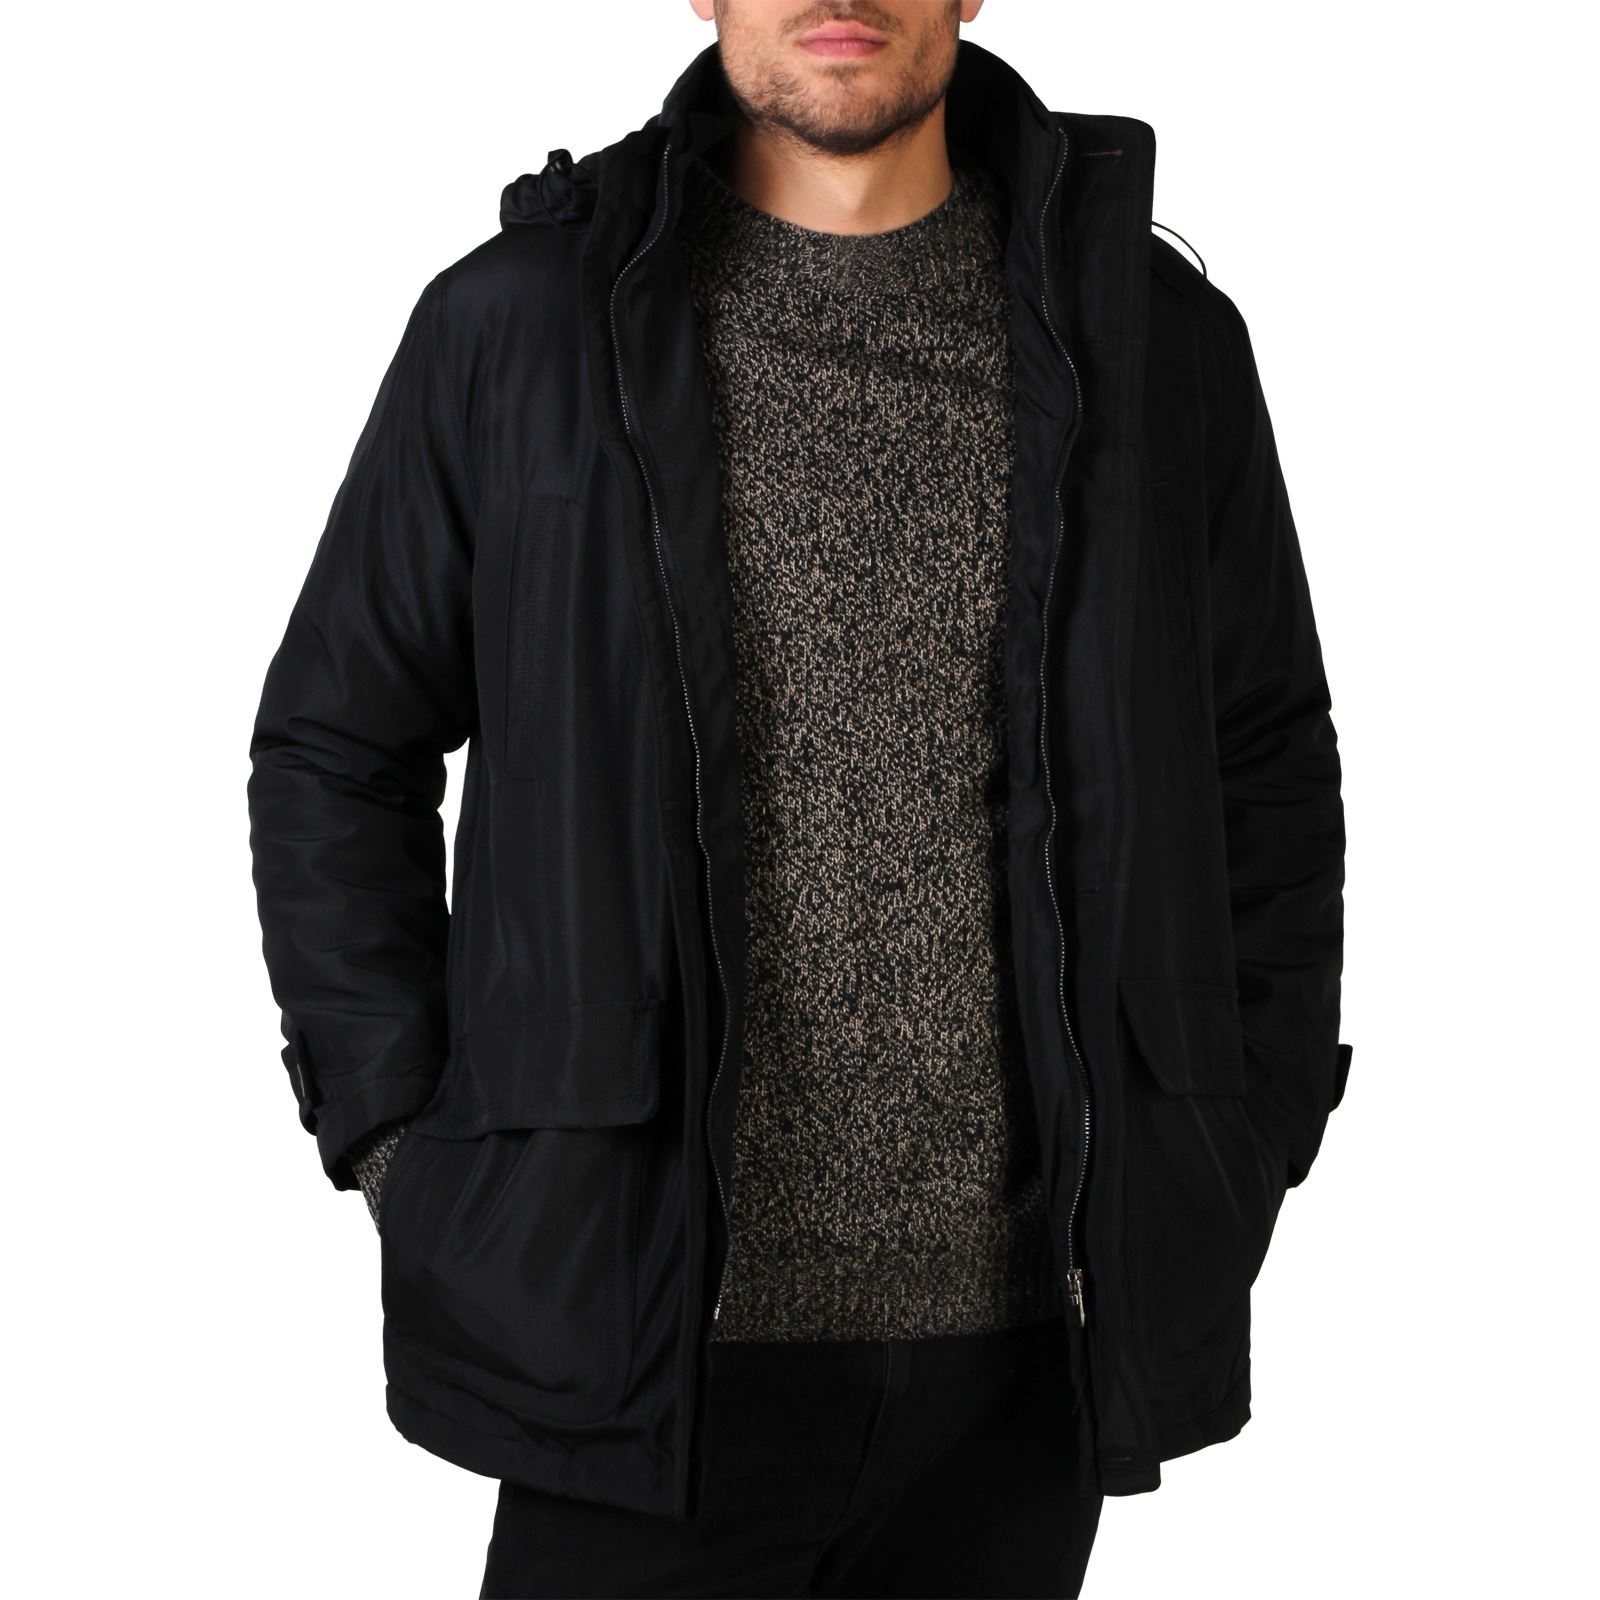 Find a full collection of Women's Plus Size MEN'S BIG & TALL,Plus Size Coats & Jackets in modern and classic styles, also find plus size dresses, jeans, career, pants, shirts, sweaters, coats and more.